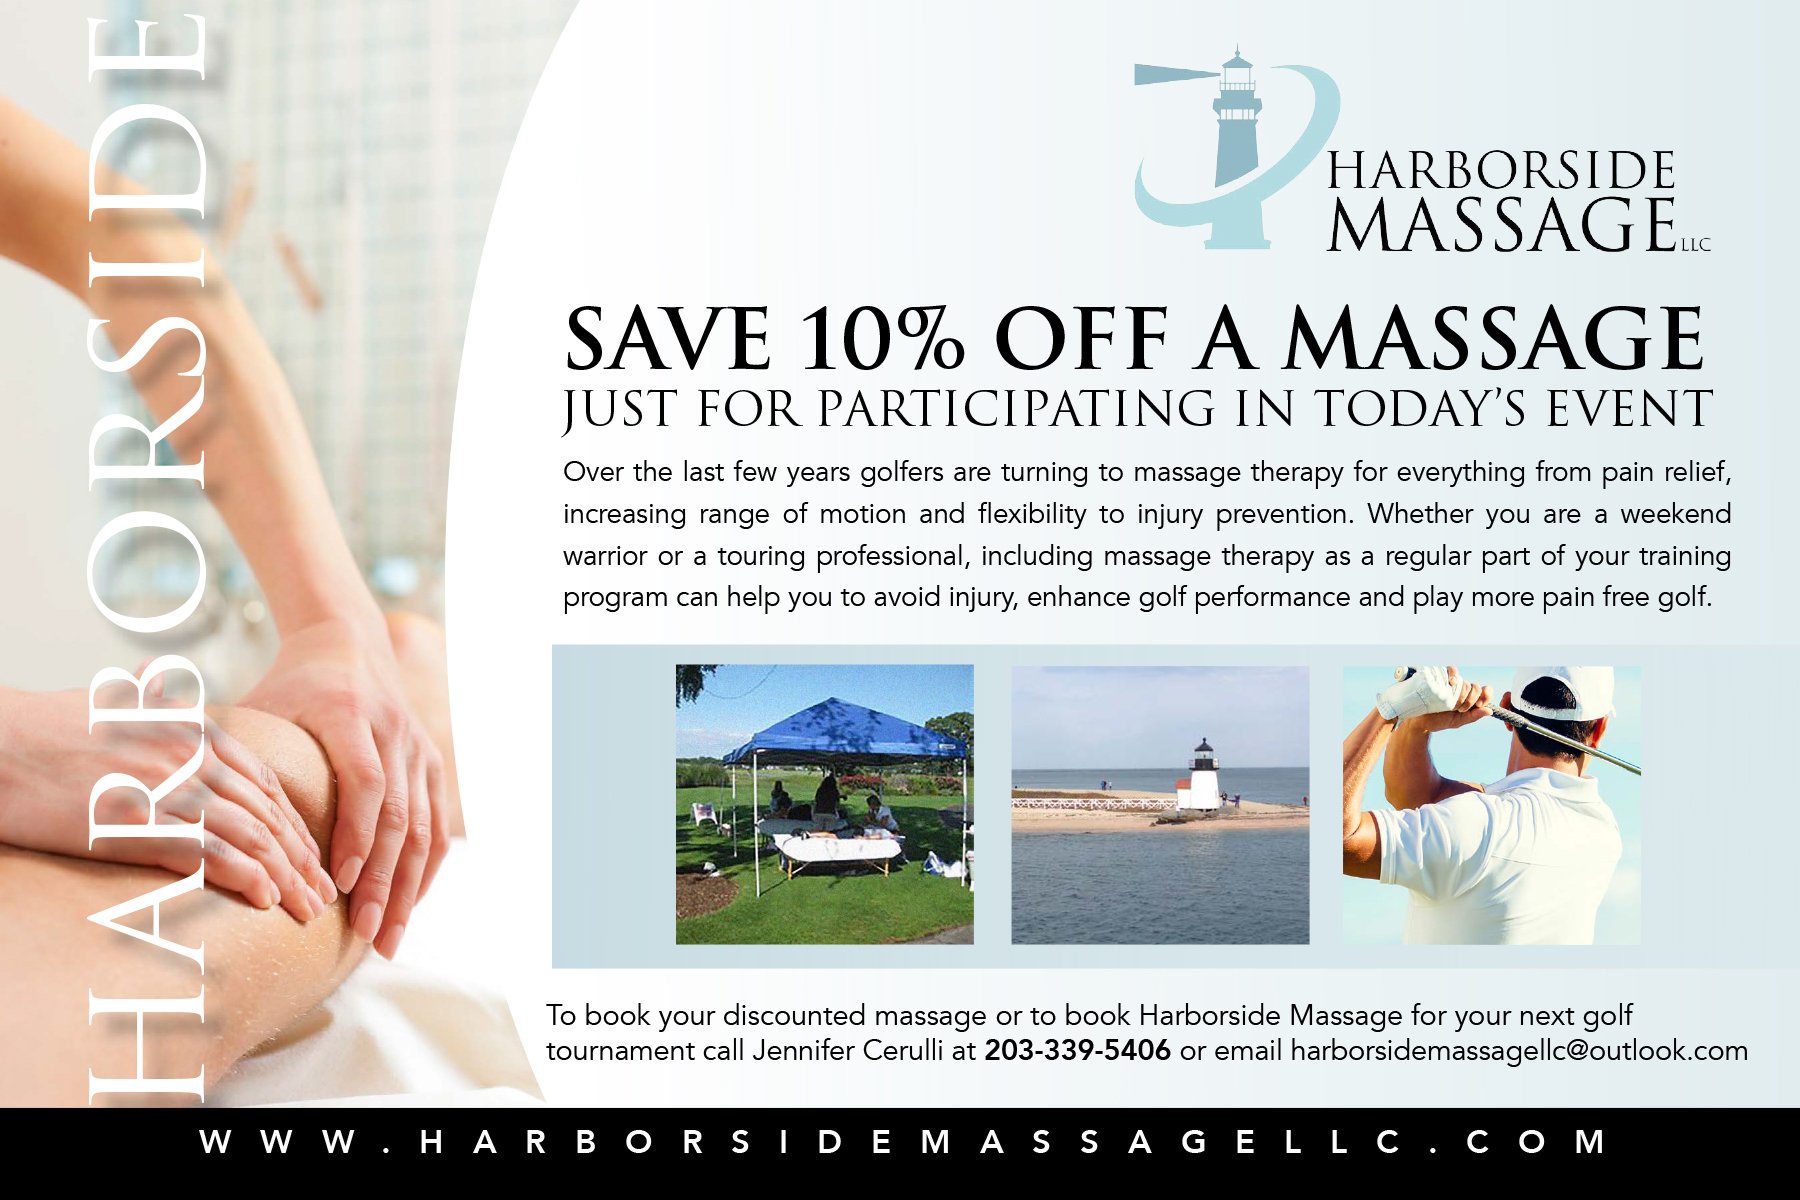 Harborside Massage